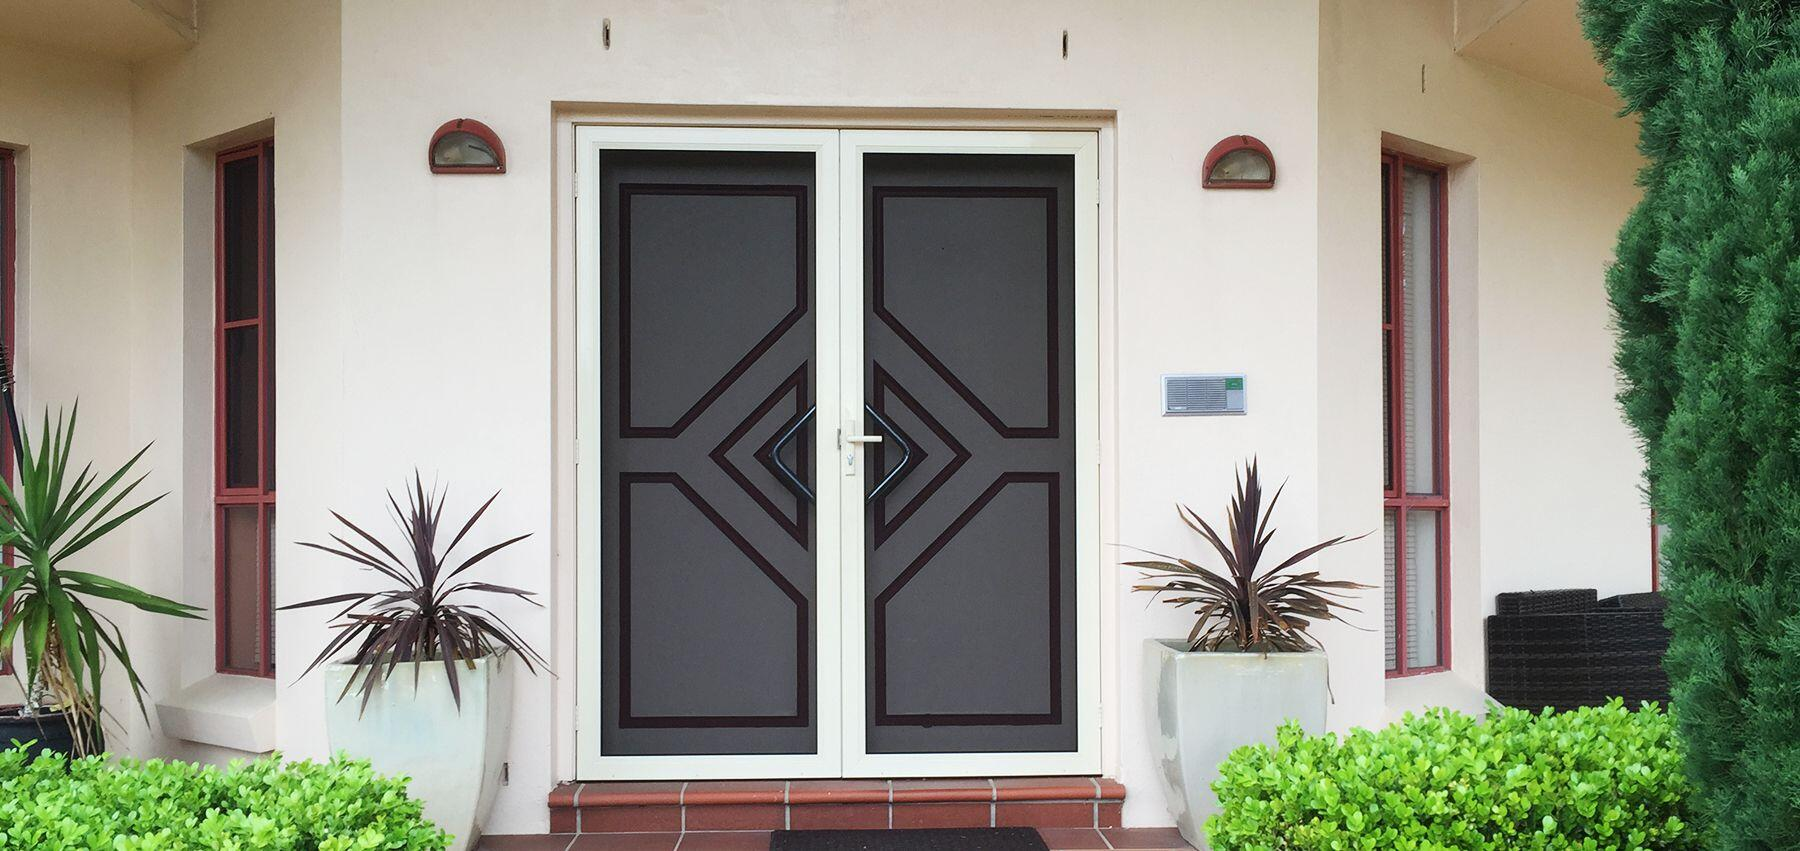 Crimsafe® Security Doors